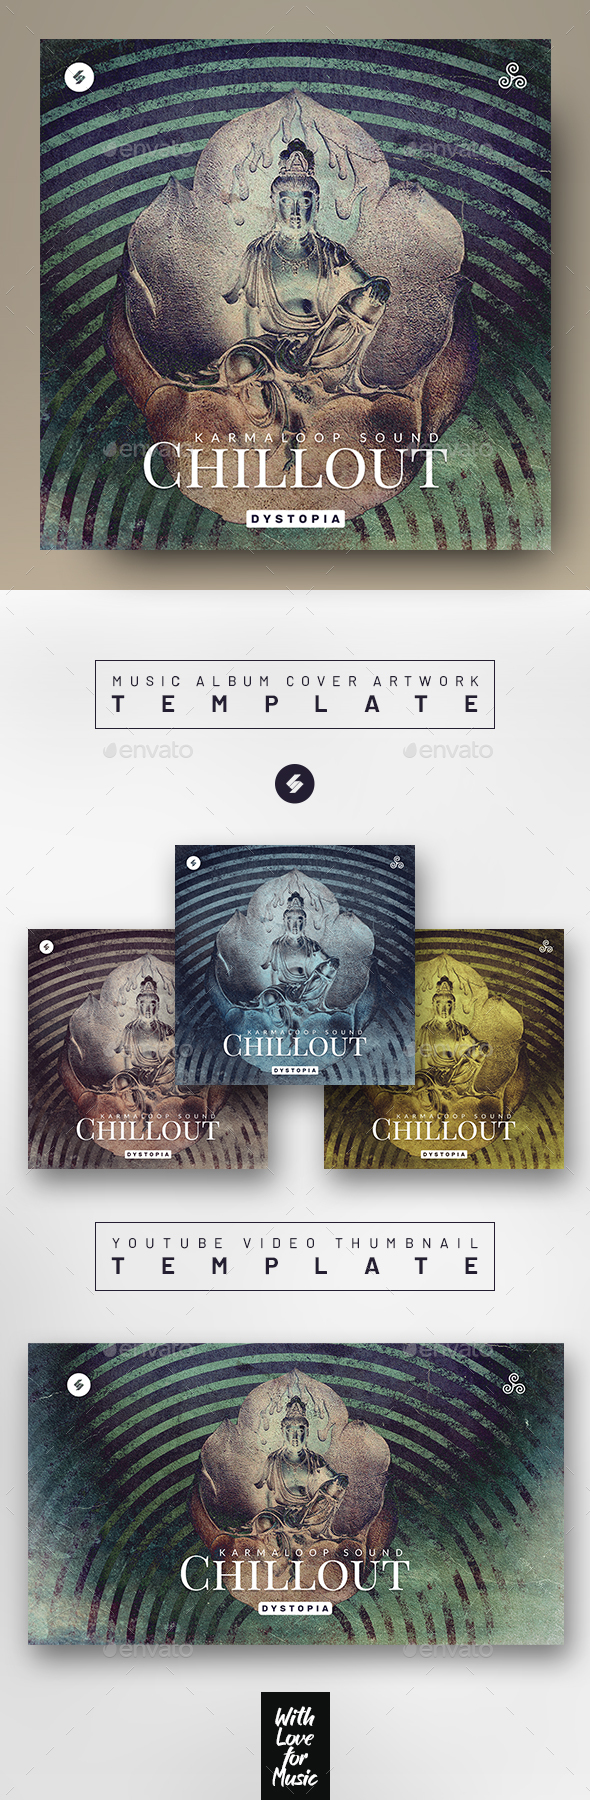 Chillout Music Album Cover / Youtube Thumbnail Template